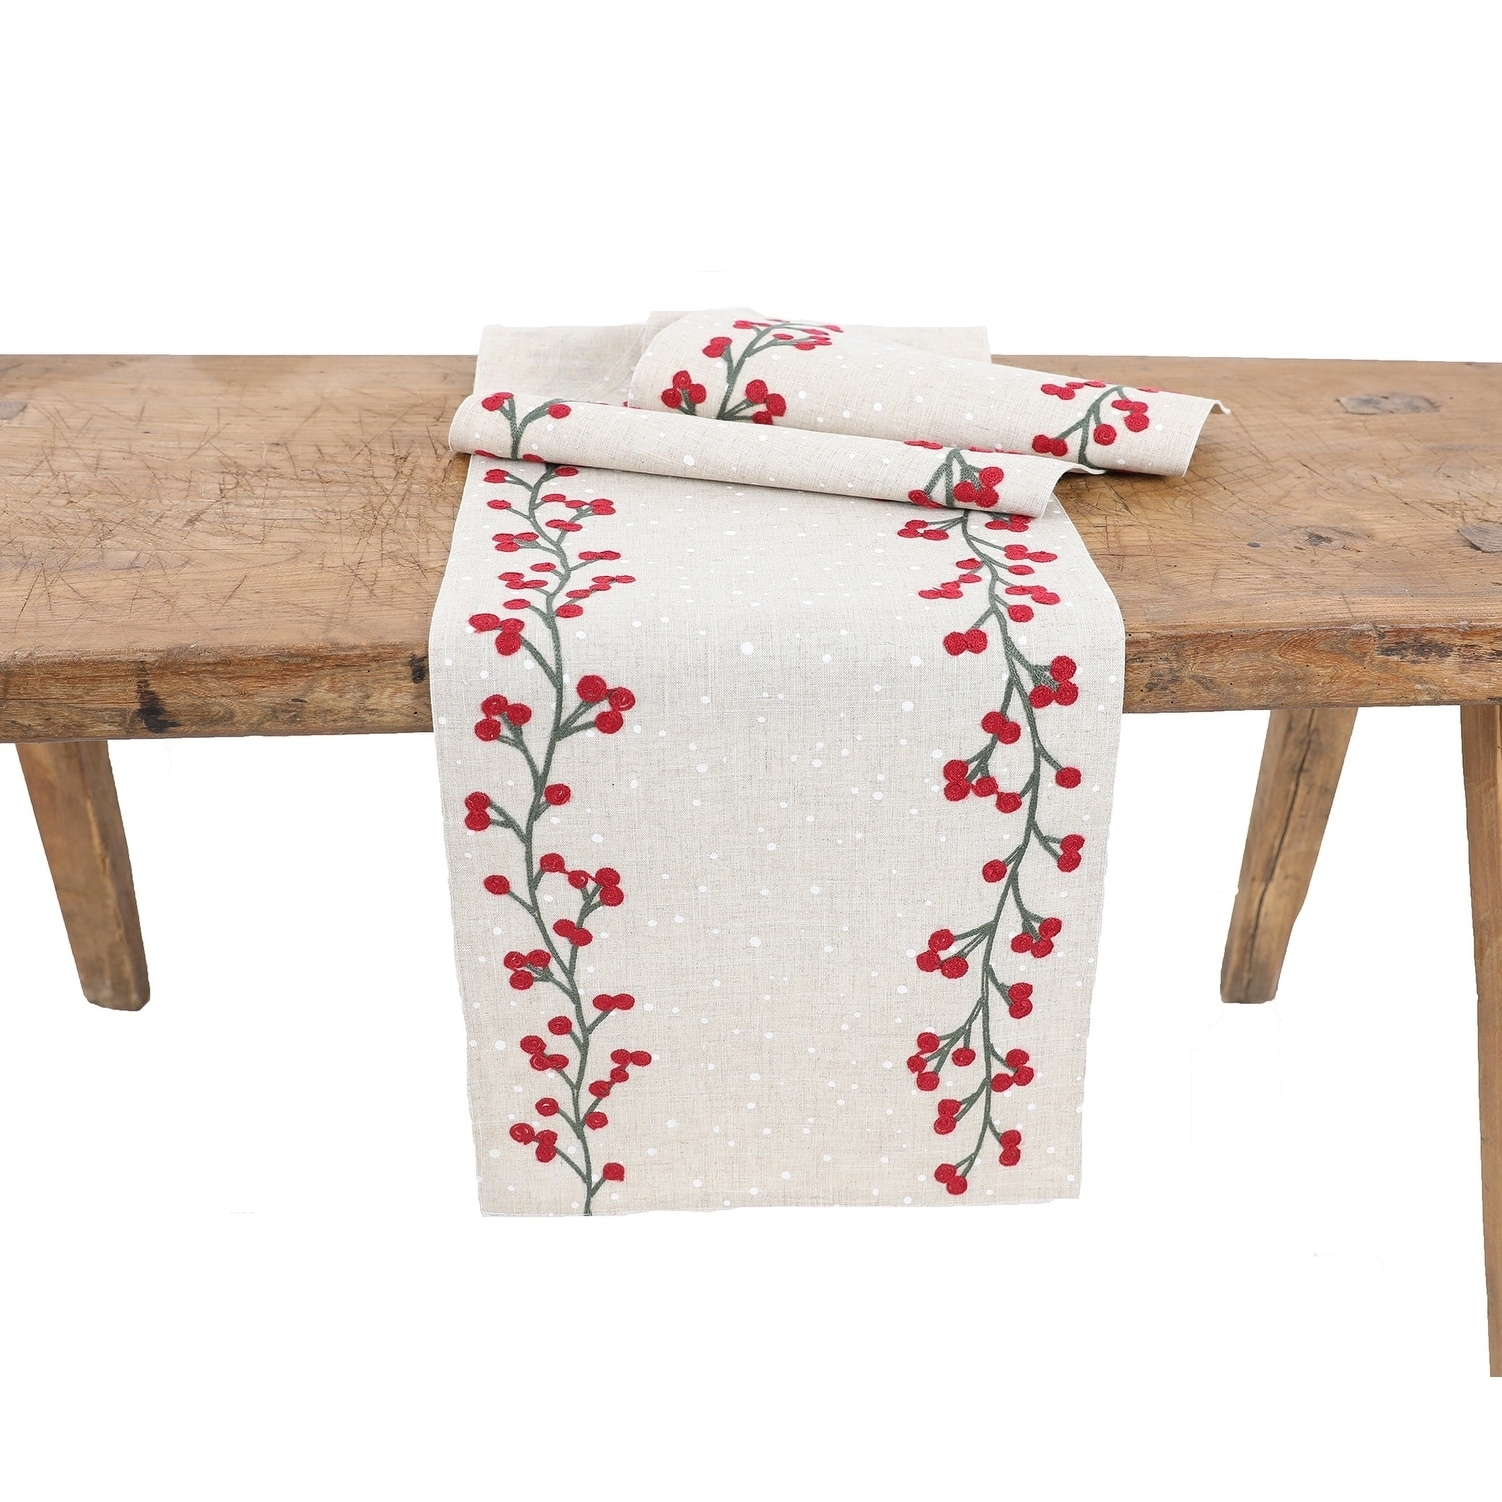 Holly Berry Branch Crewel Embroidered Christmas Table Runner 16 X36 Overstock 29805712 16 X36